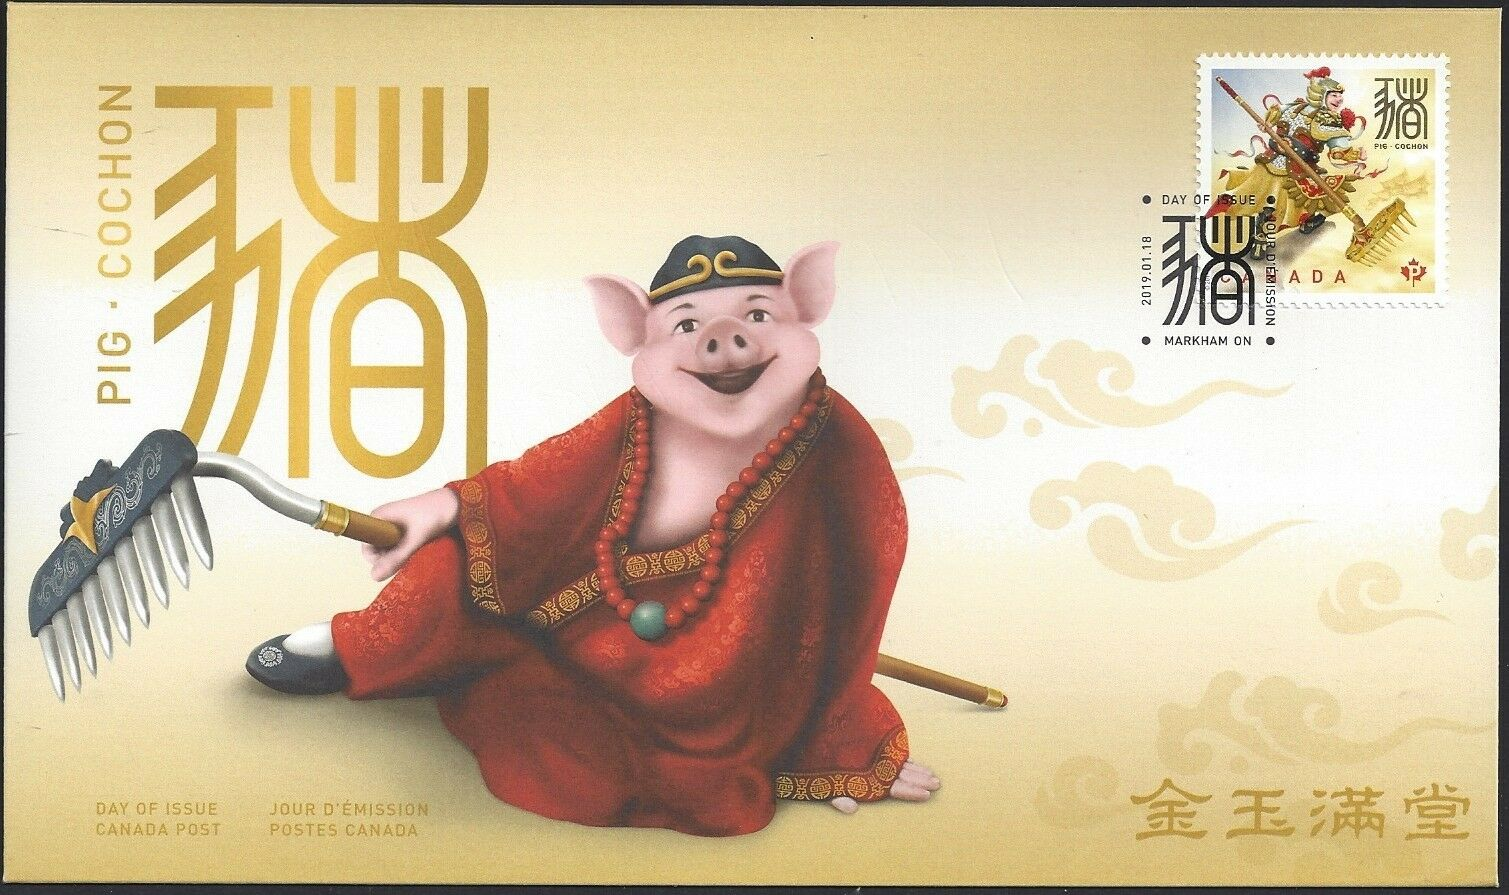 Canada - Year of the Pig (January 18, 2019) first day cover 1, front